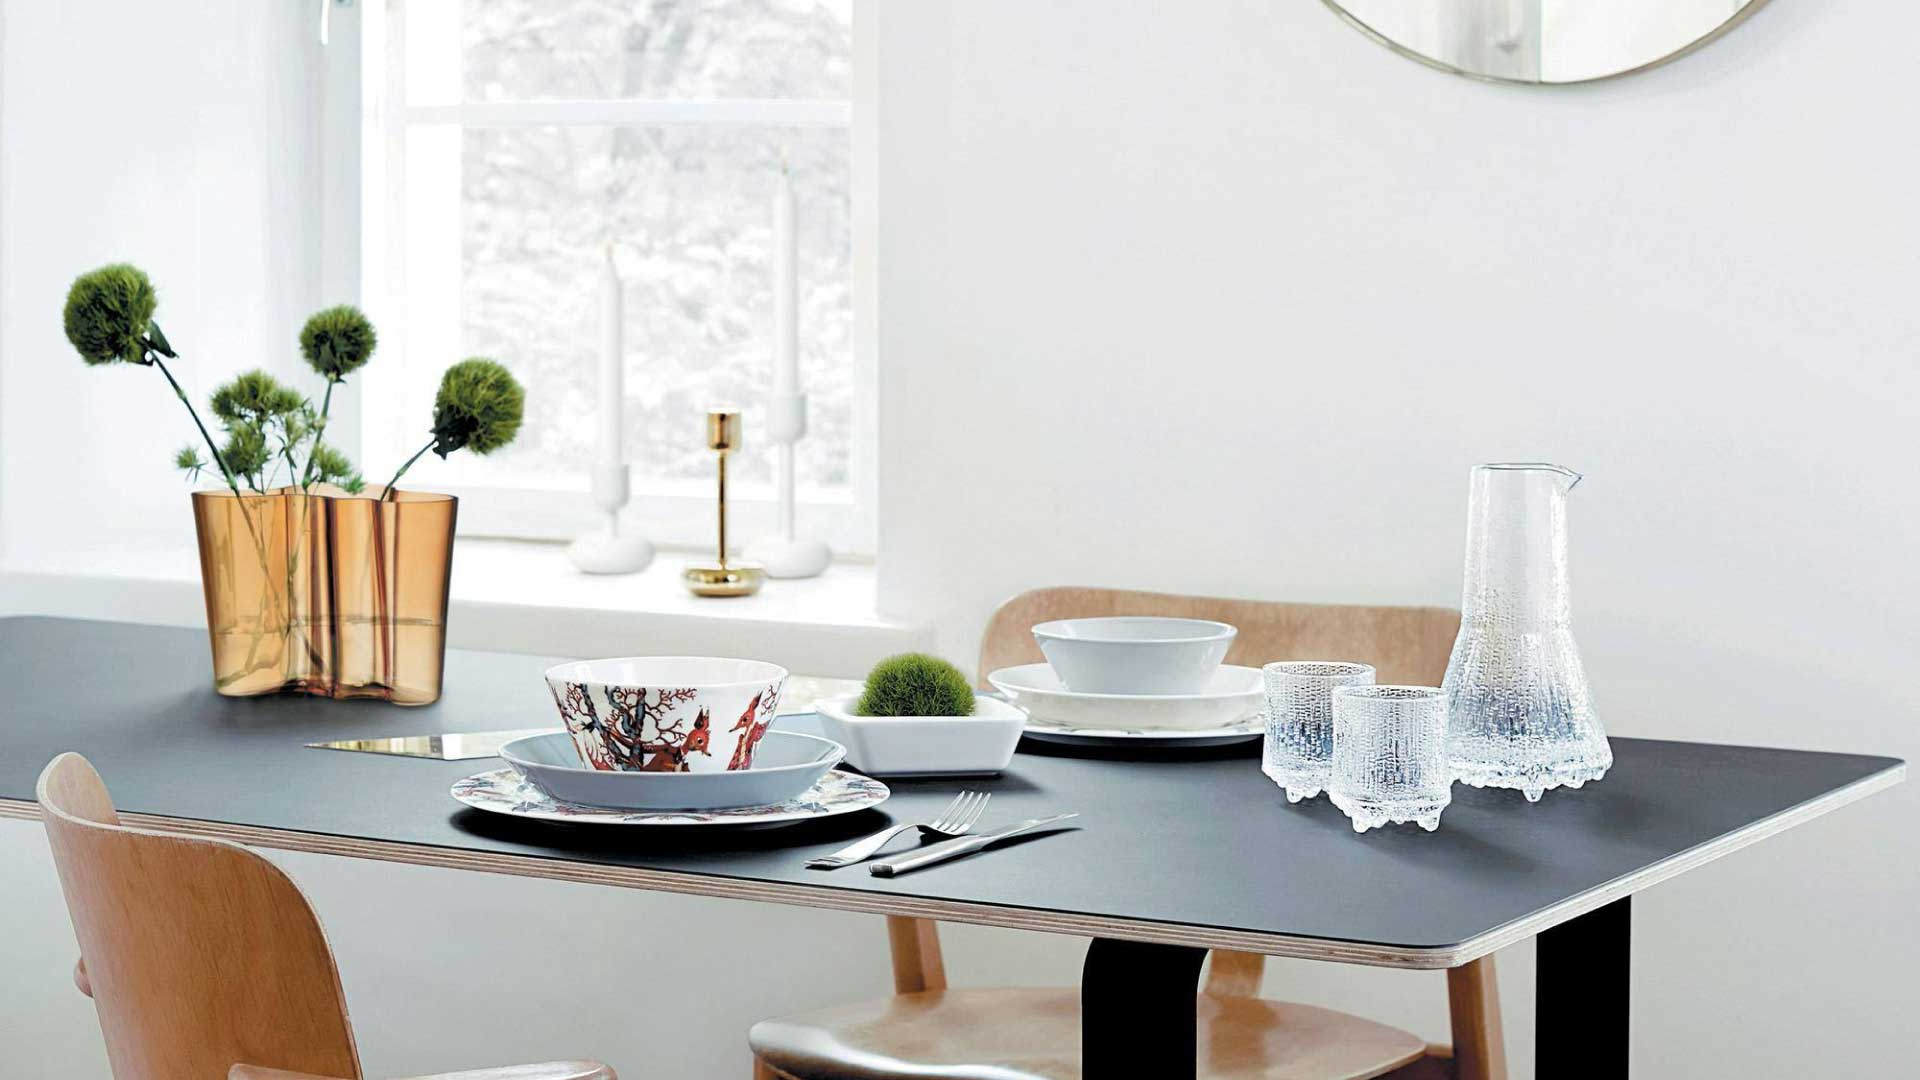 Nio & Elva Sneek Iittala dealer Friesland